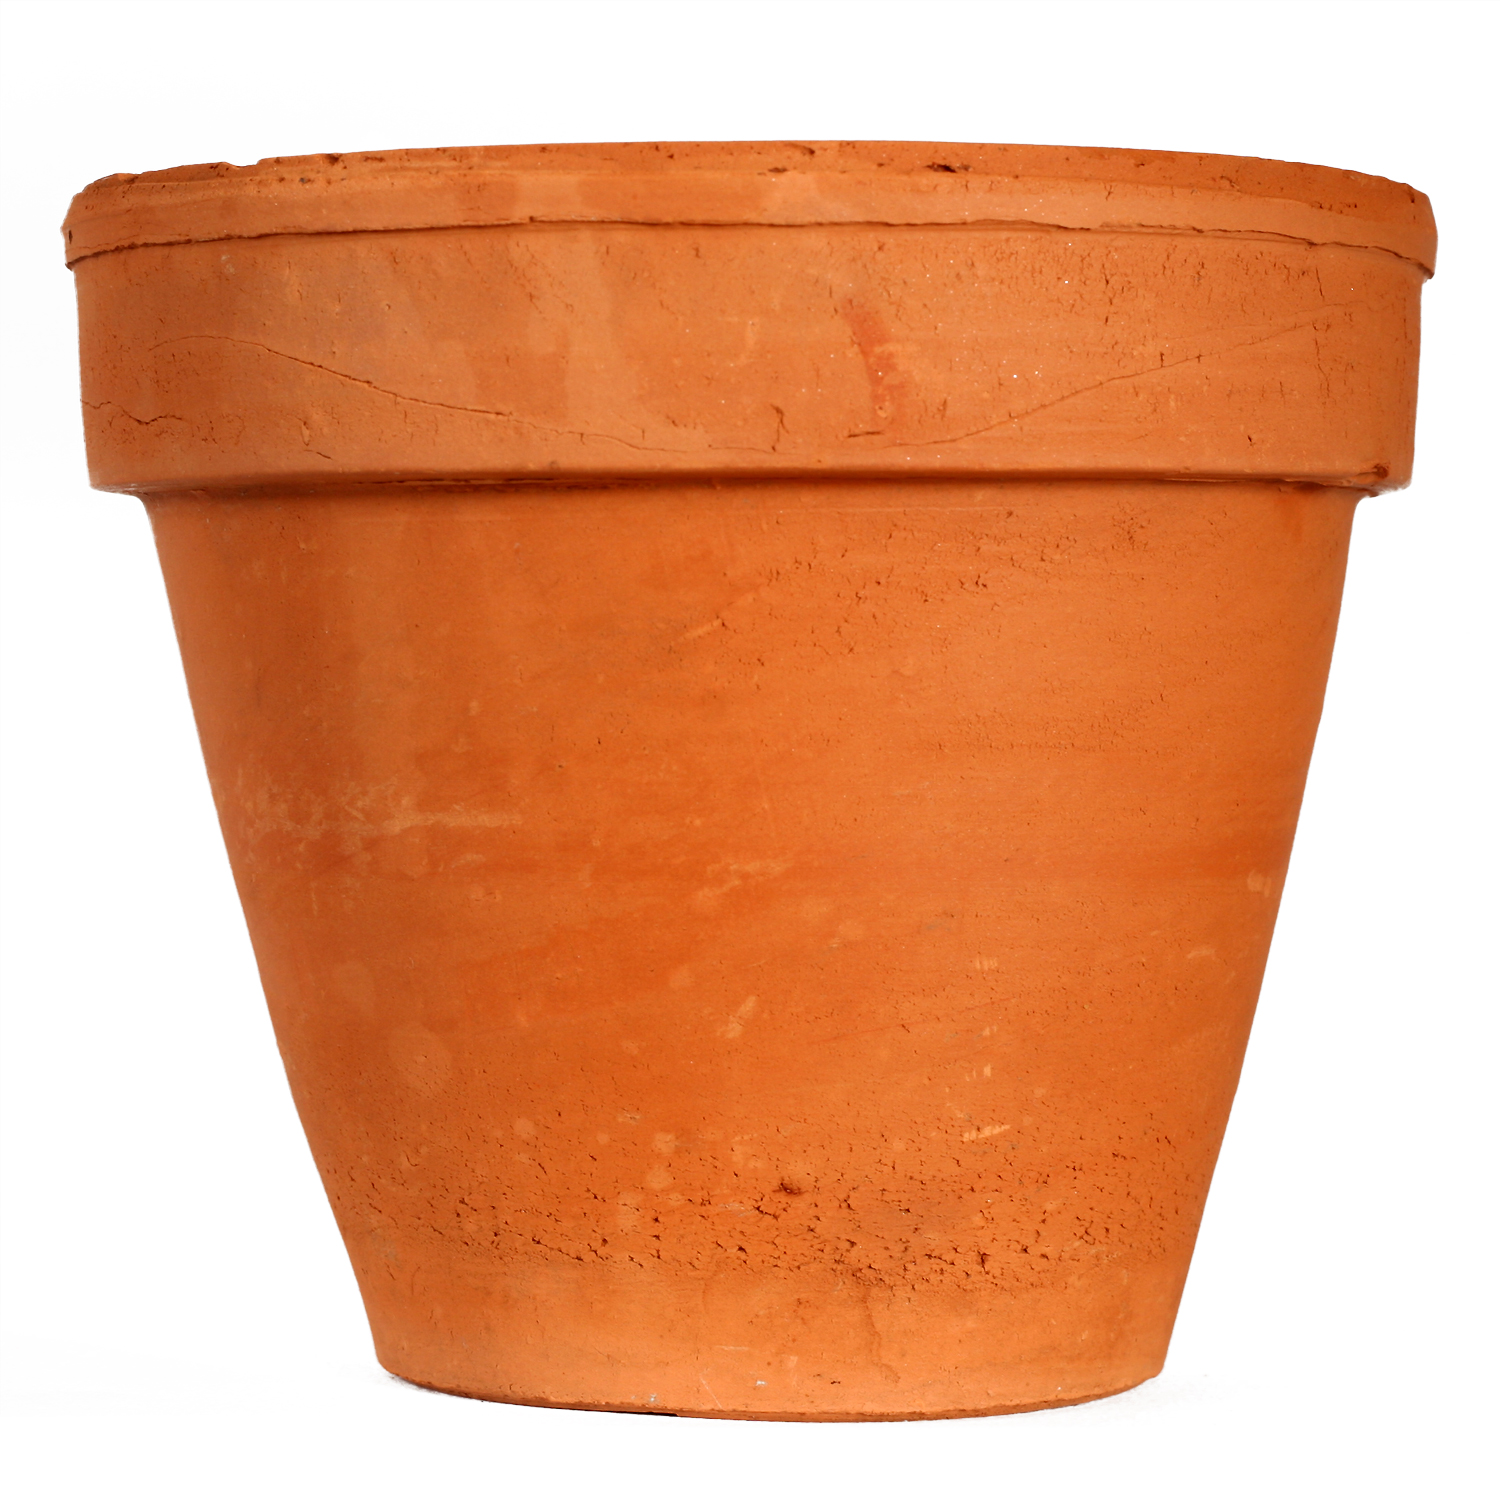 Potted plant improvement tips